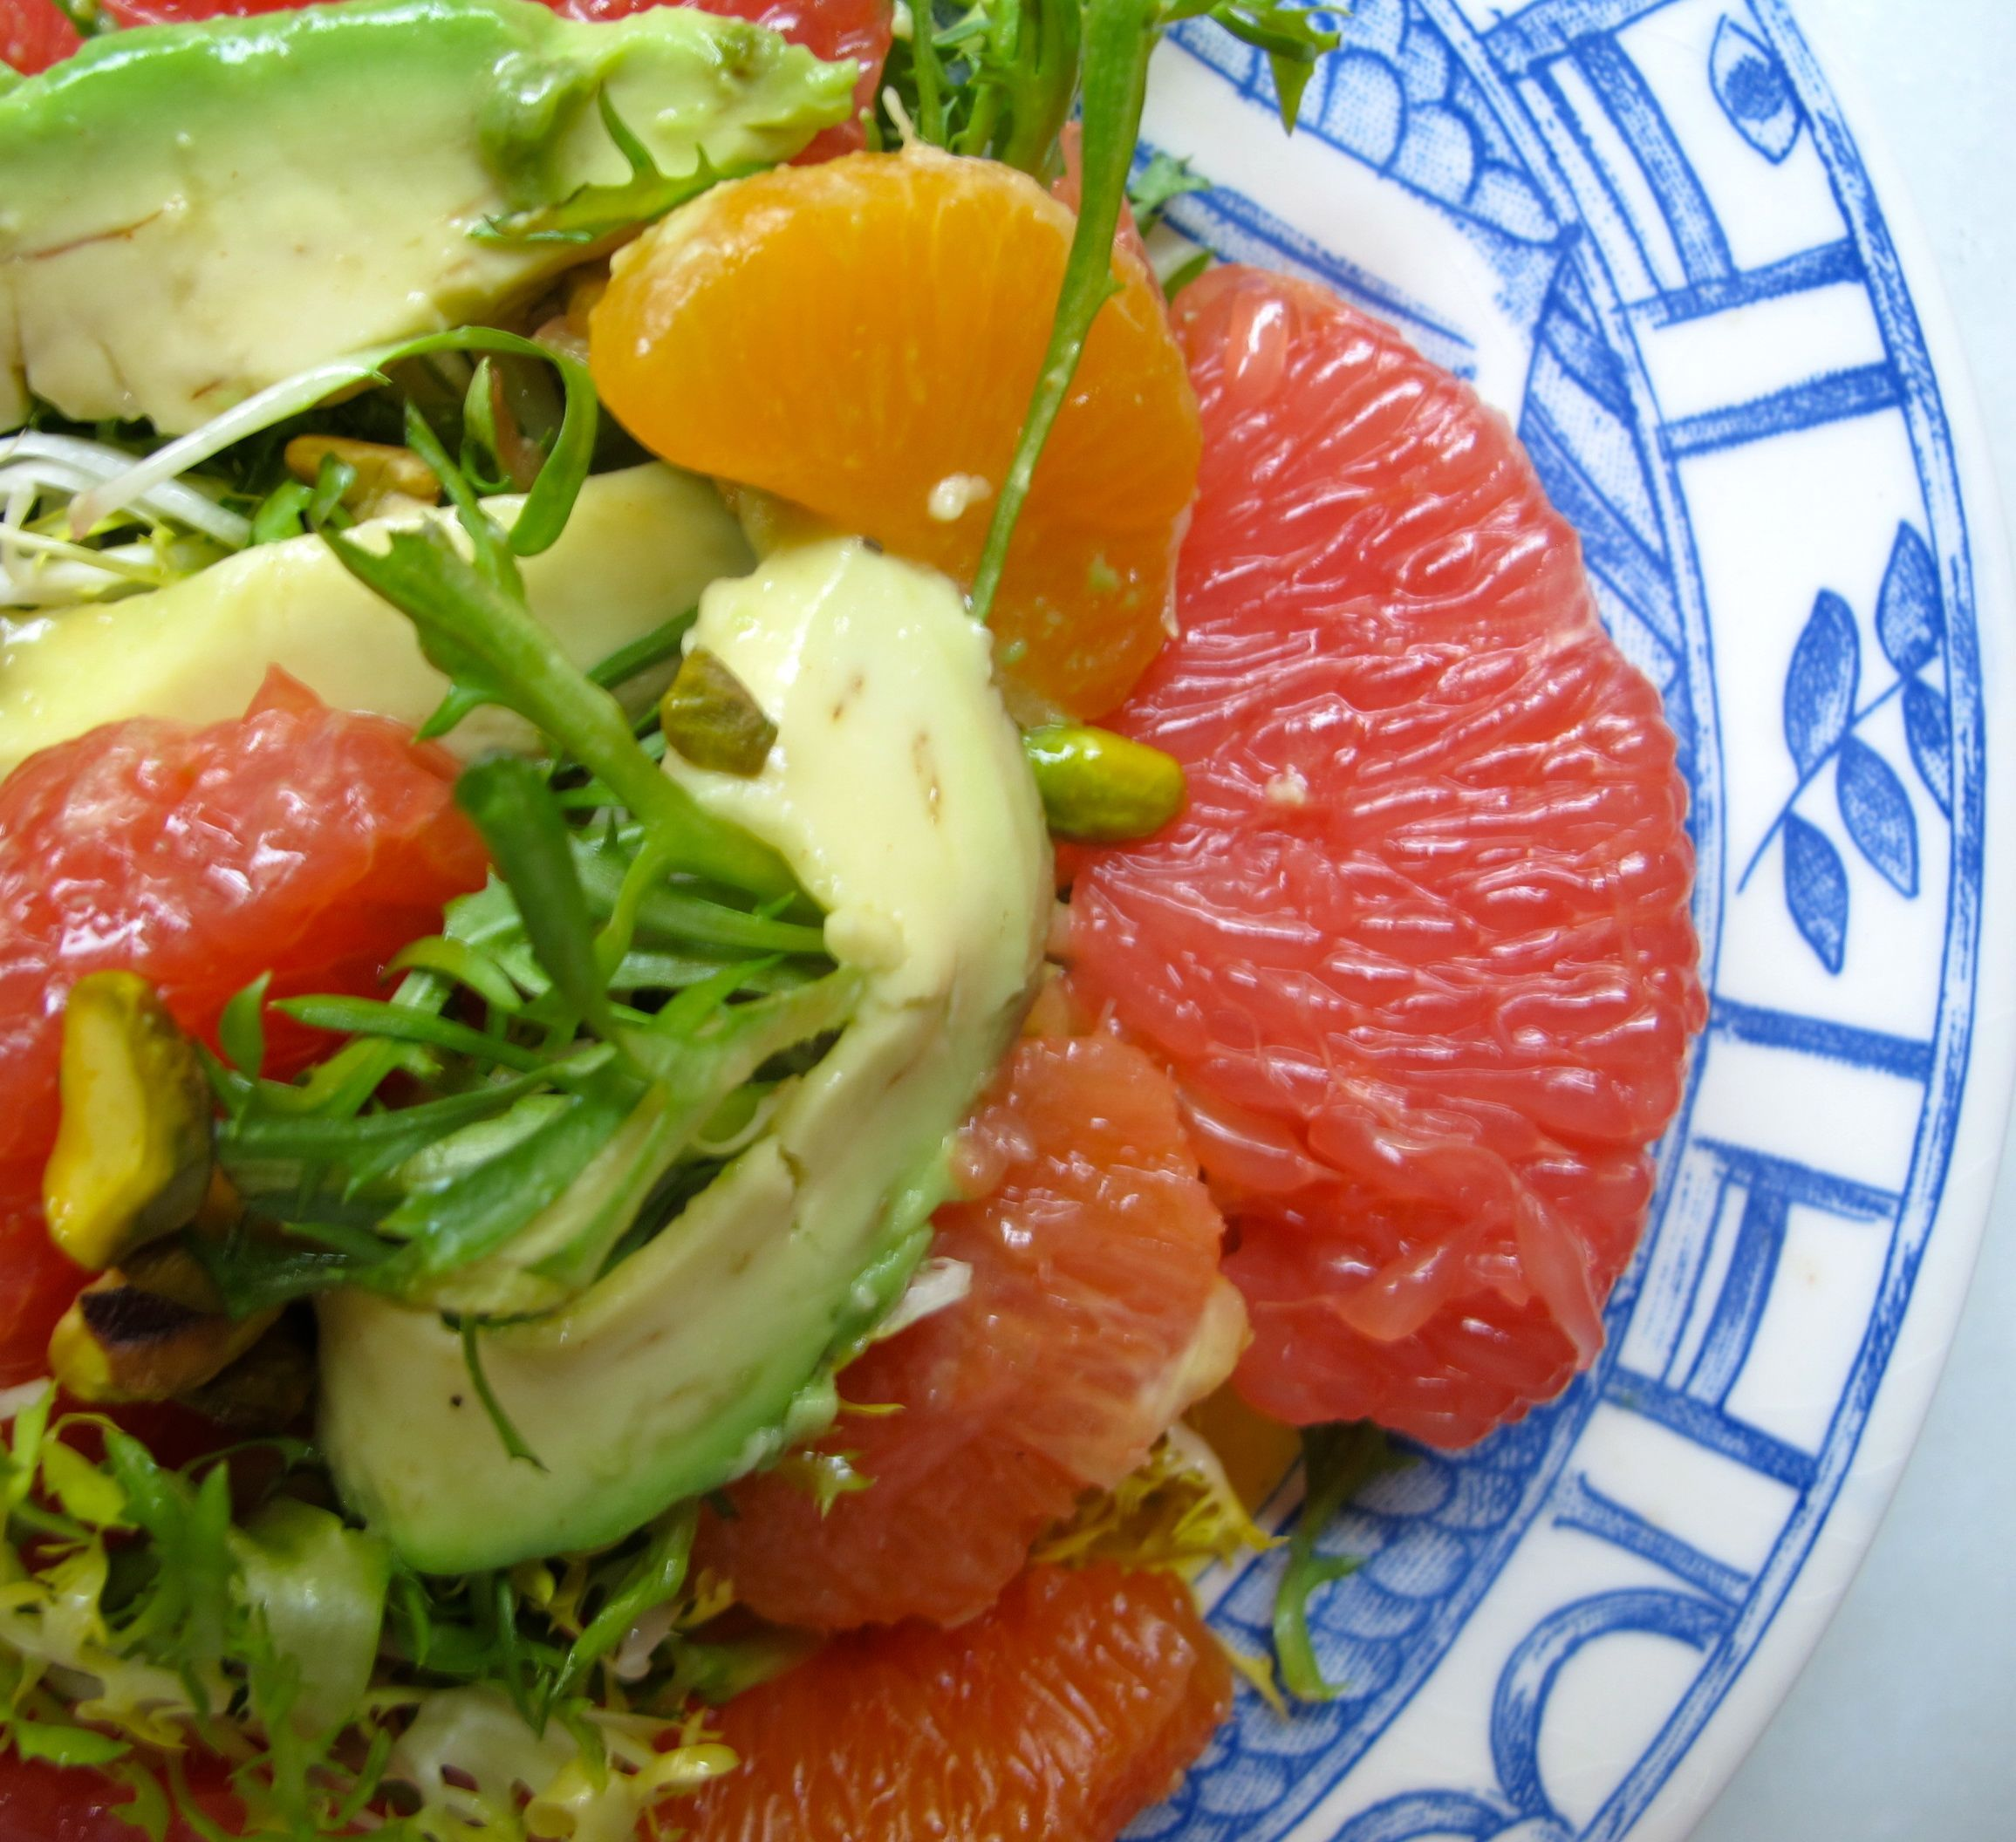 Avocado Recipes Healthy Clean Eating Lunches